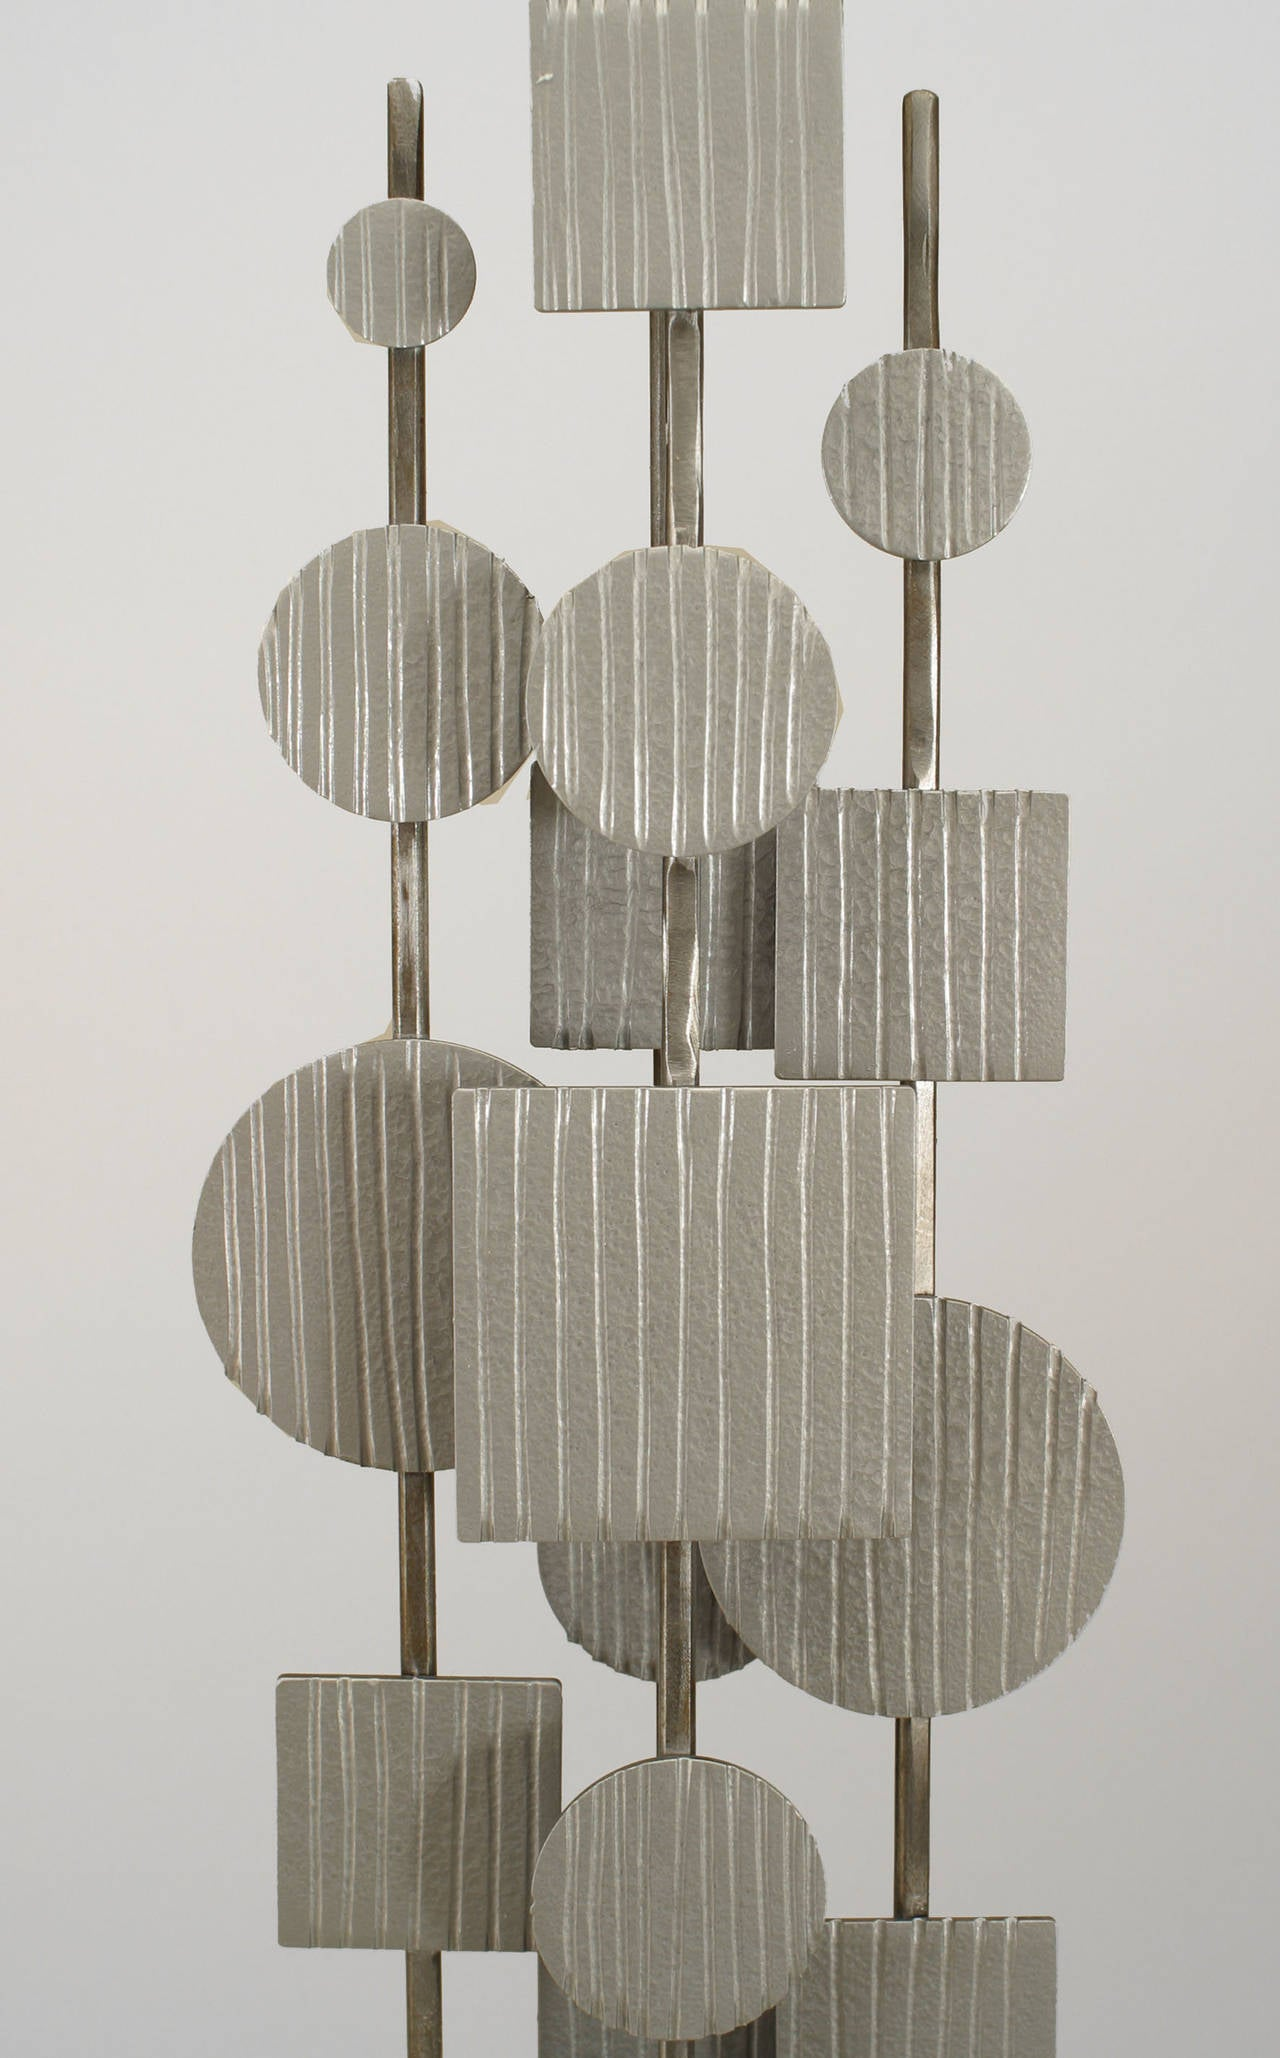 American Post-War Design abstract steel sculpture on a black rectangular base of vertically arranged circles and squares.